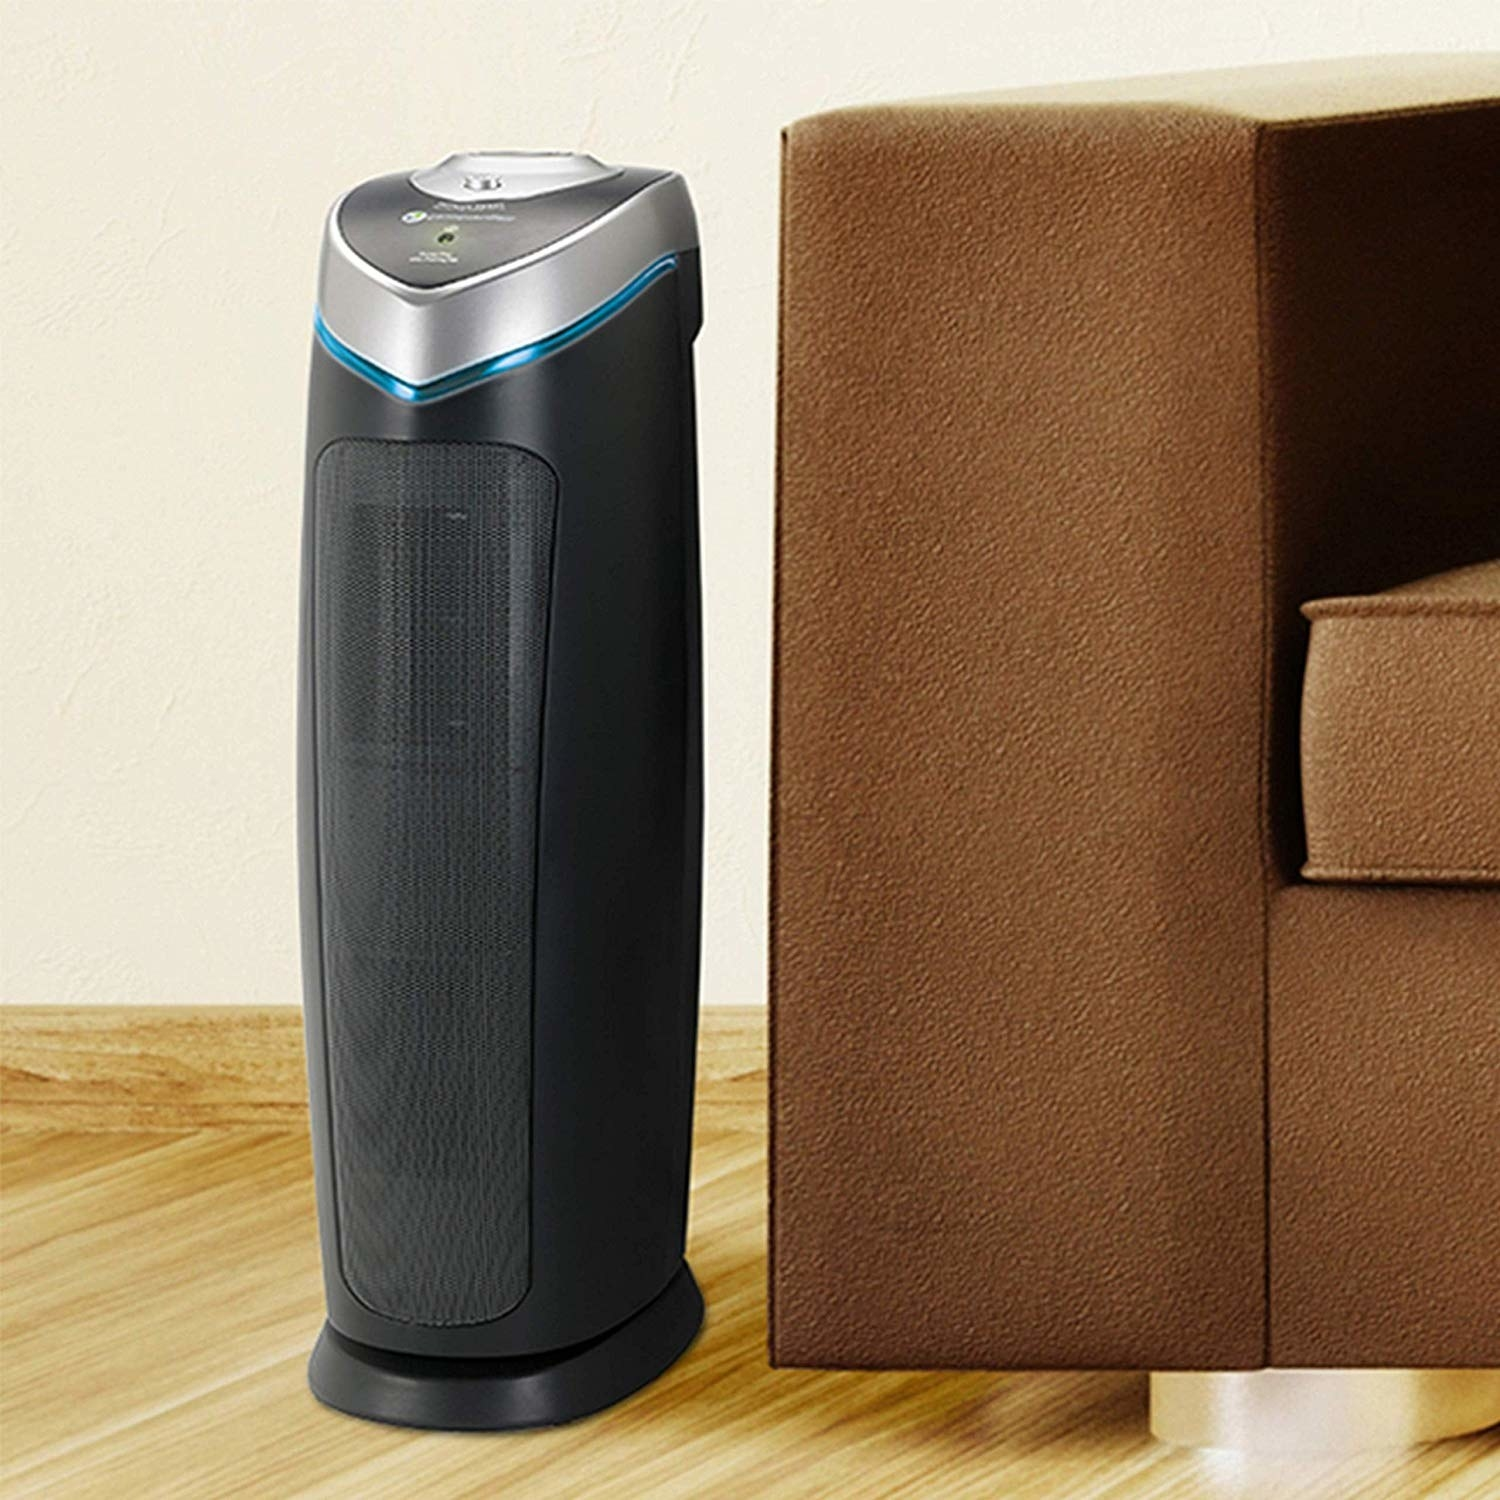 the air purifier next to a brown couch